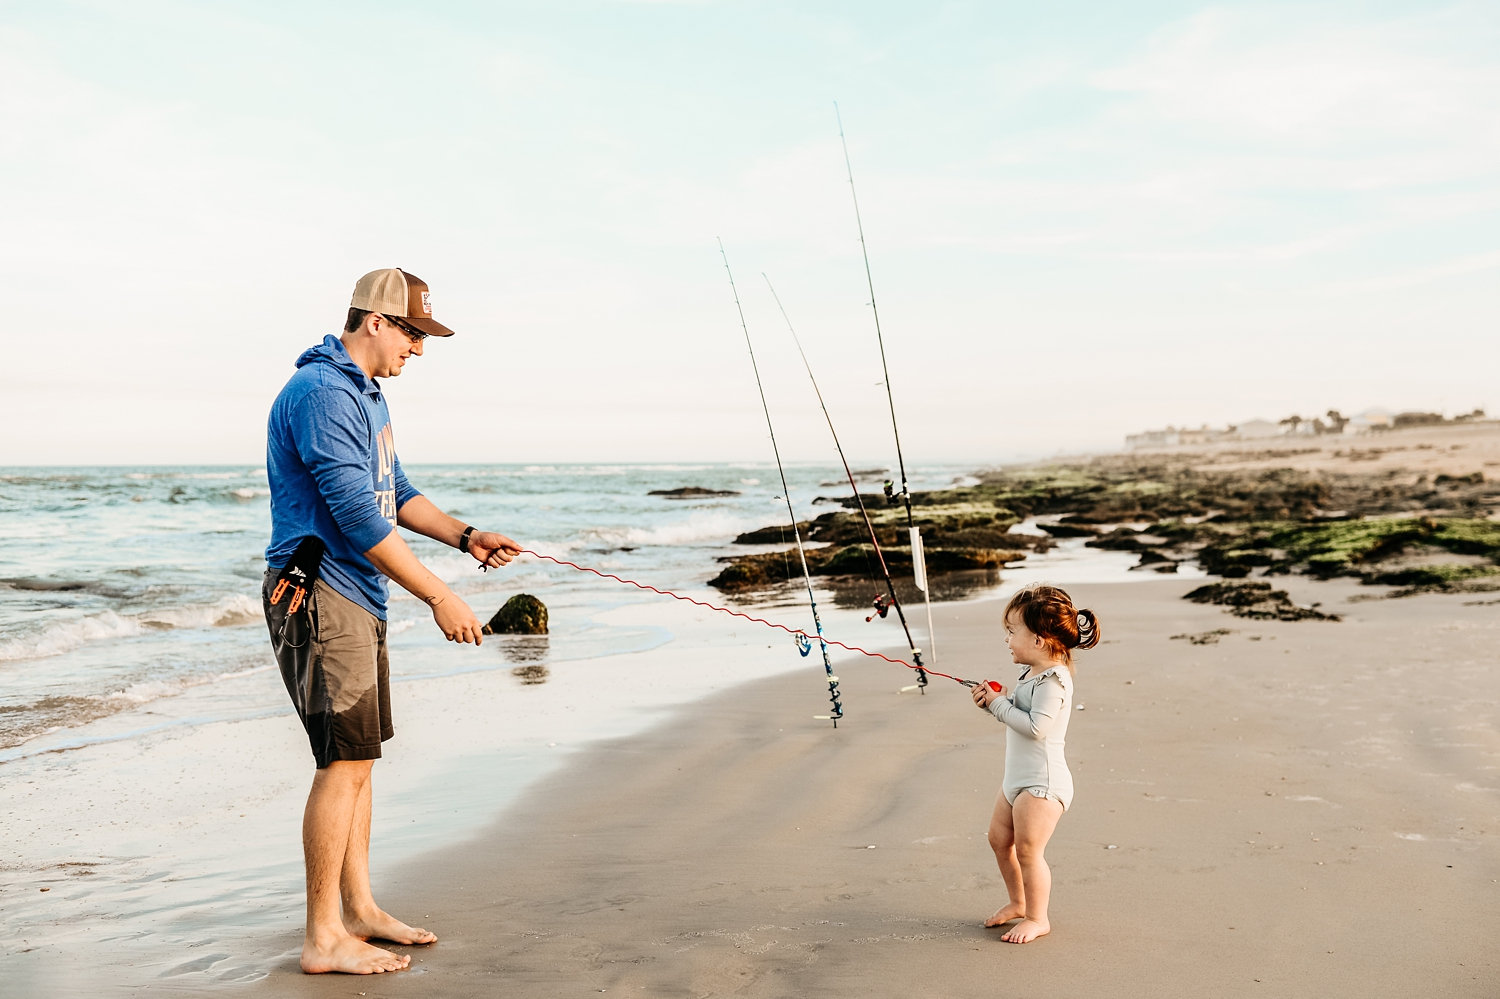 father and little girl having fun fishing on a Florida beach, Ryaphotos